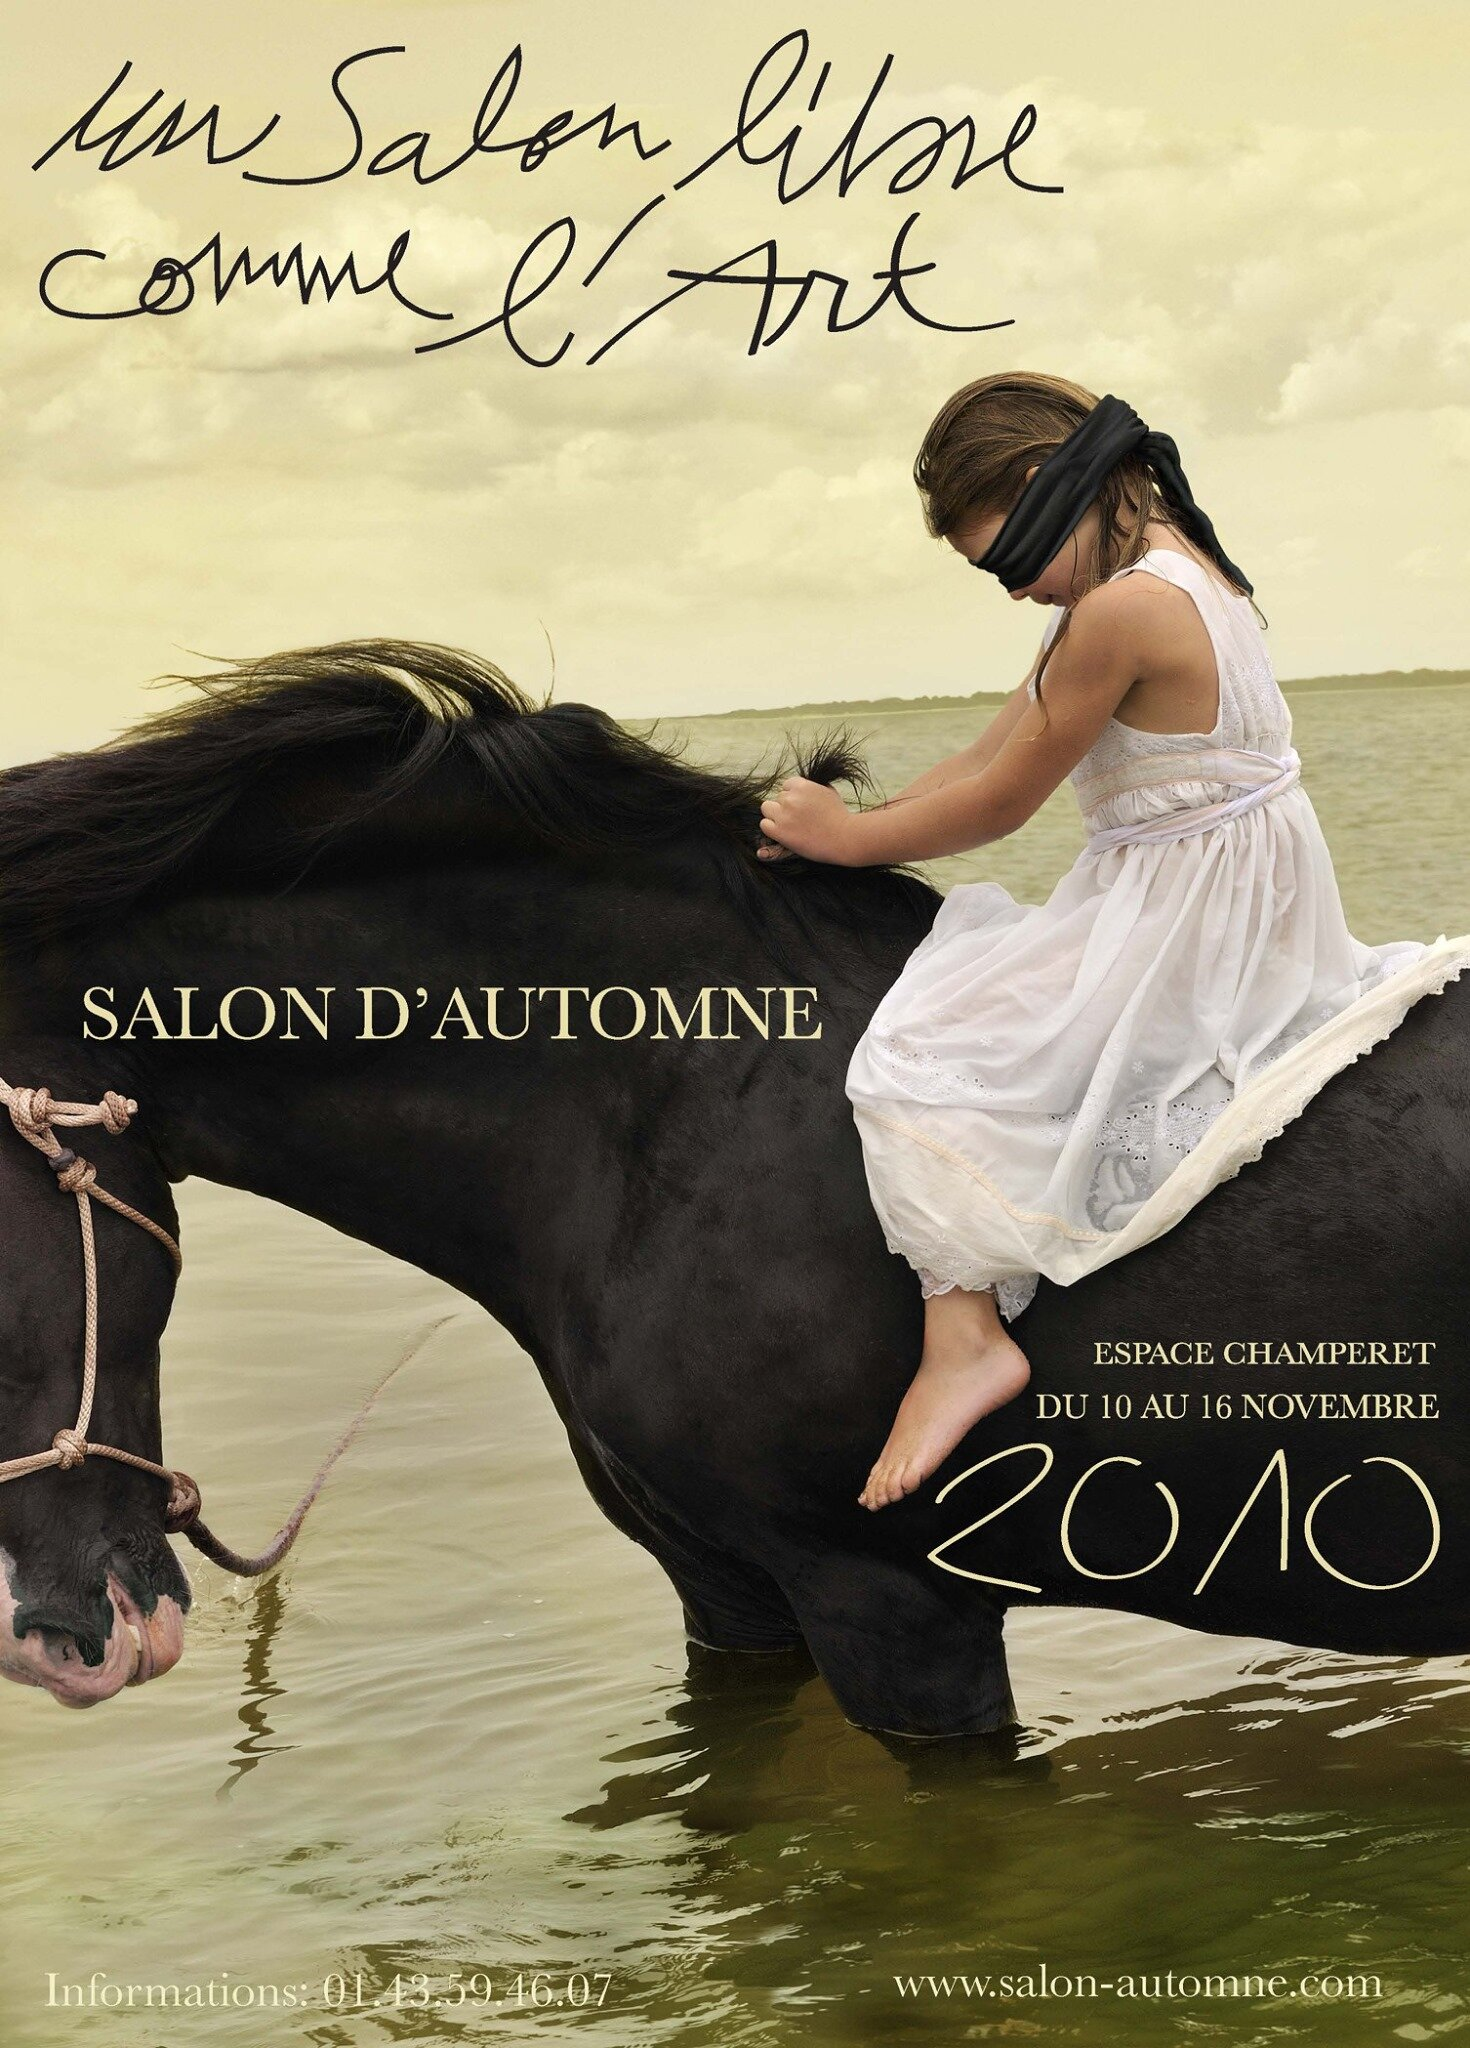 Salon d'Automne Catalog of Posters - Marwari Stallion #3 was used to advertise the 2010 Salon d'Automne and now is included in the catalog of salon posters and artists who have exhibited since 1903. The catalog will be released on October 9, 2019 at the Vernissage located at Champs Elysess, Place George Clemenceau at the 2019 Salon d'Automne.